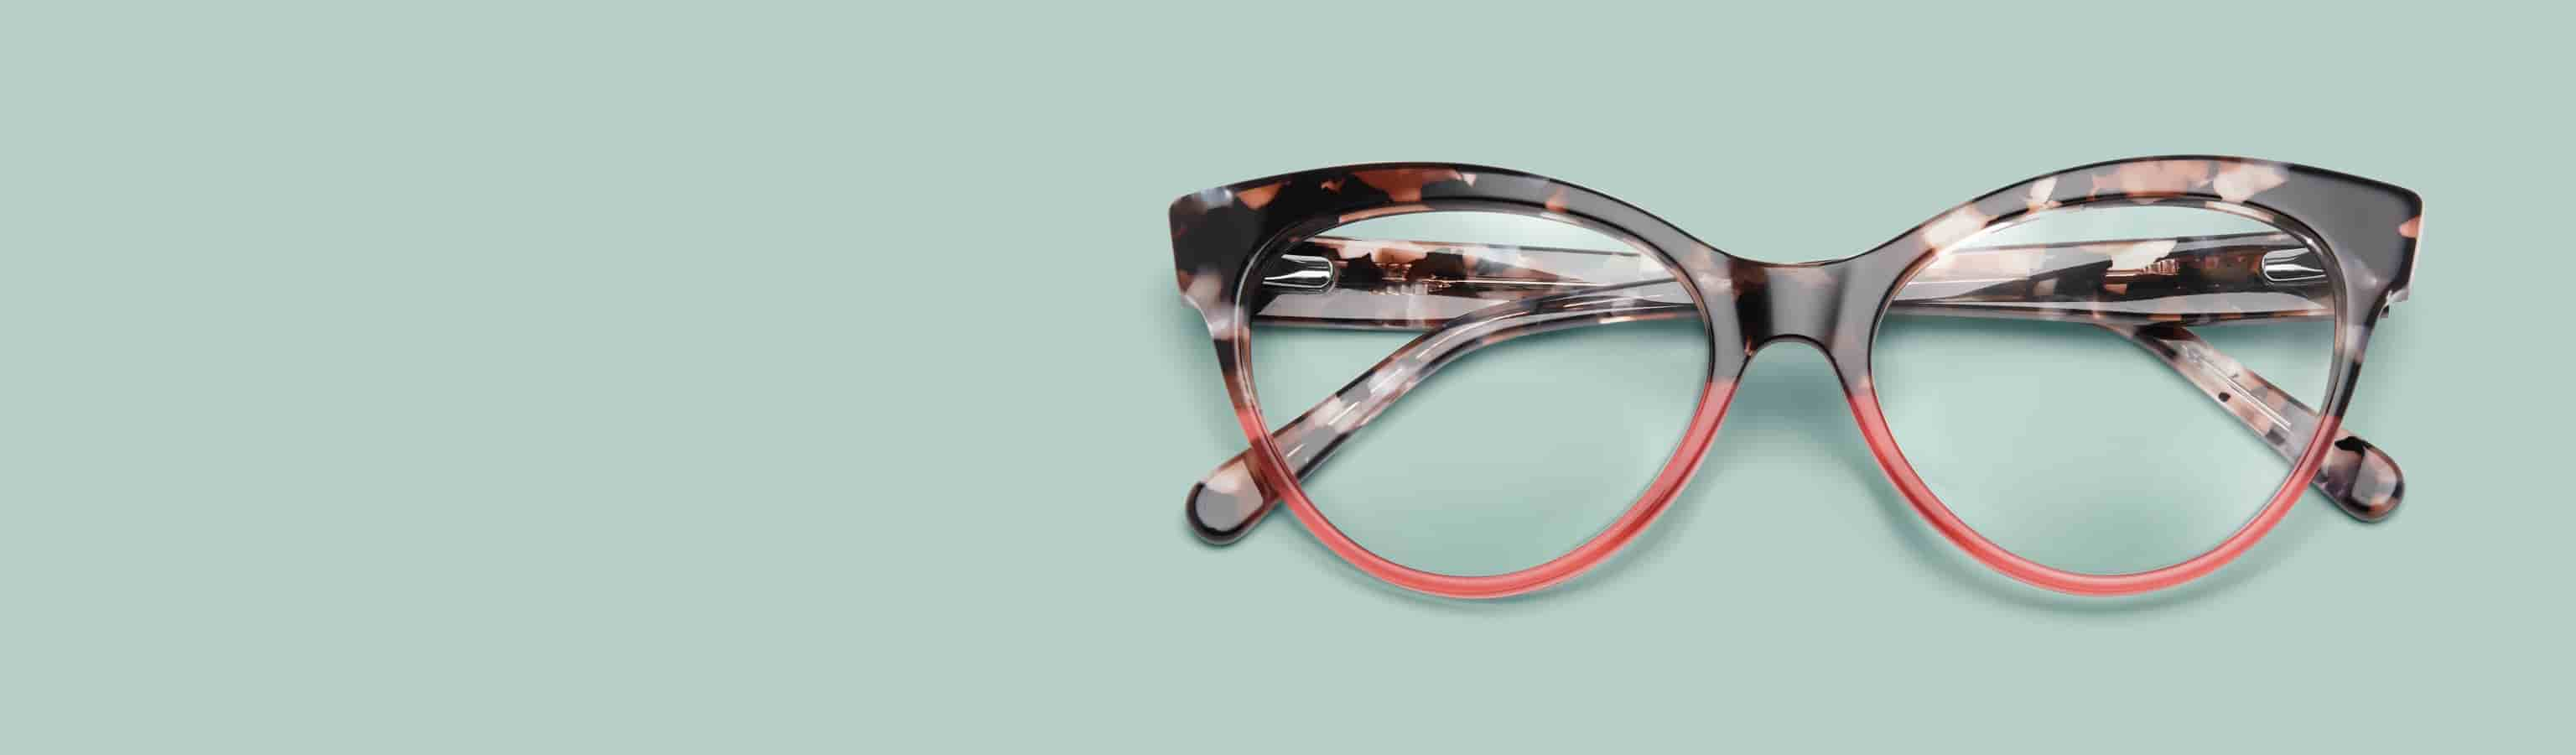 Cat-eye glasses #4434139 with two-tone pattern of tortoiseshell top rim and pink bottom rim with mint green background.